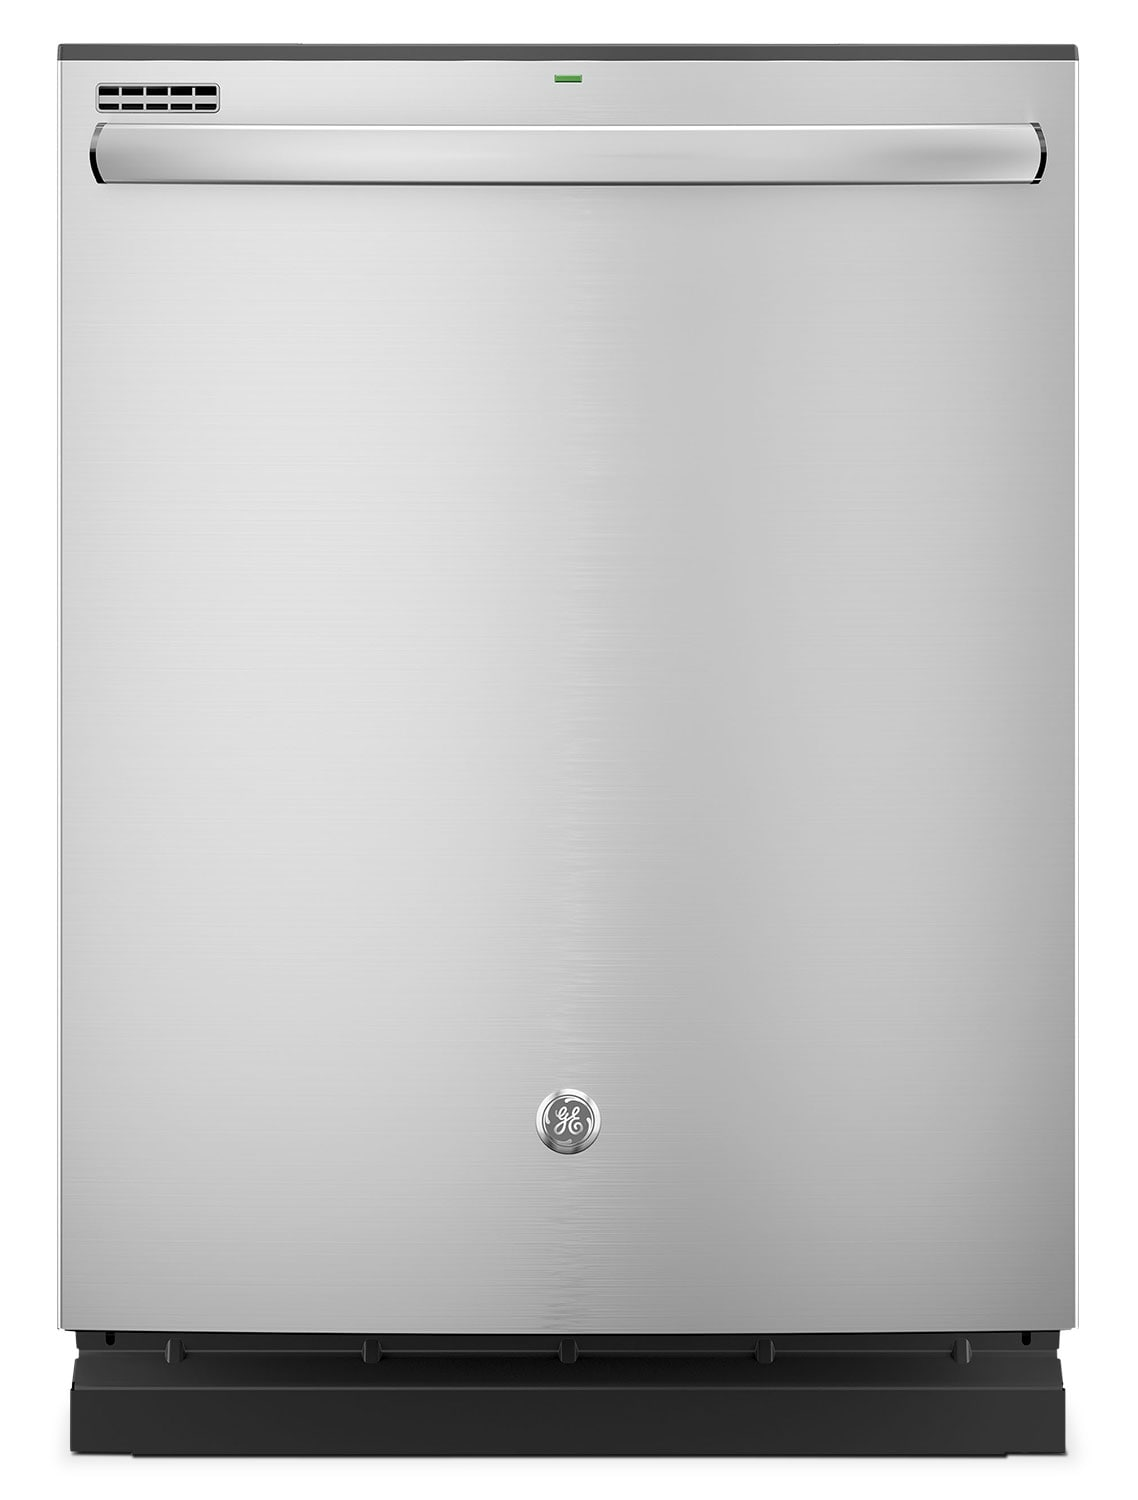 GE Tall-Tub Dishwasher with Hidden Controls – GDT545PSJSS